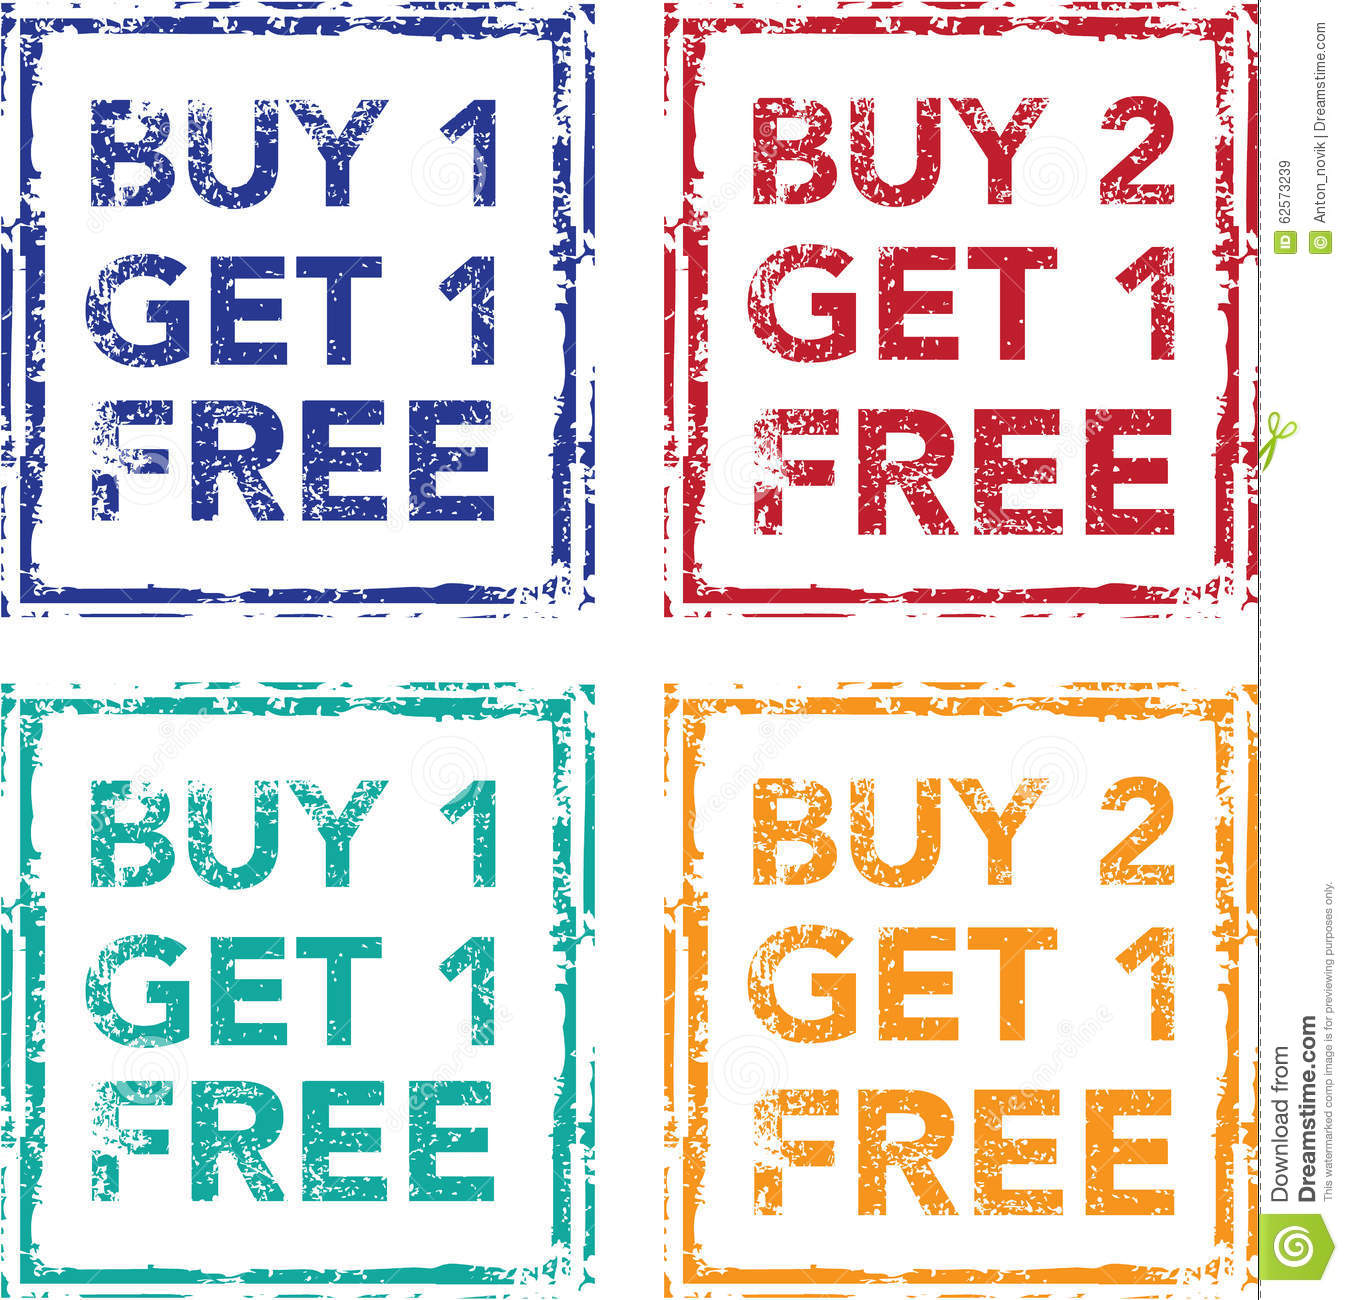 Buy: Buy 1 Get 1 Free Stamp Buy 2 Get 1 Free Vector Stock